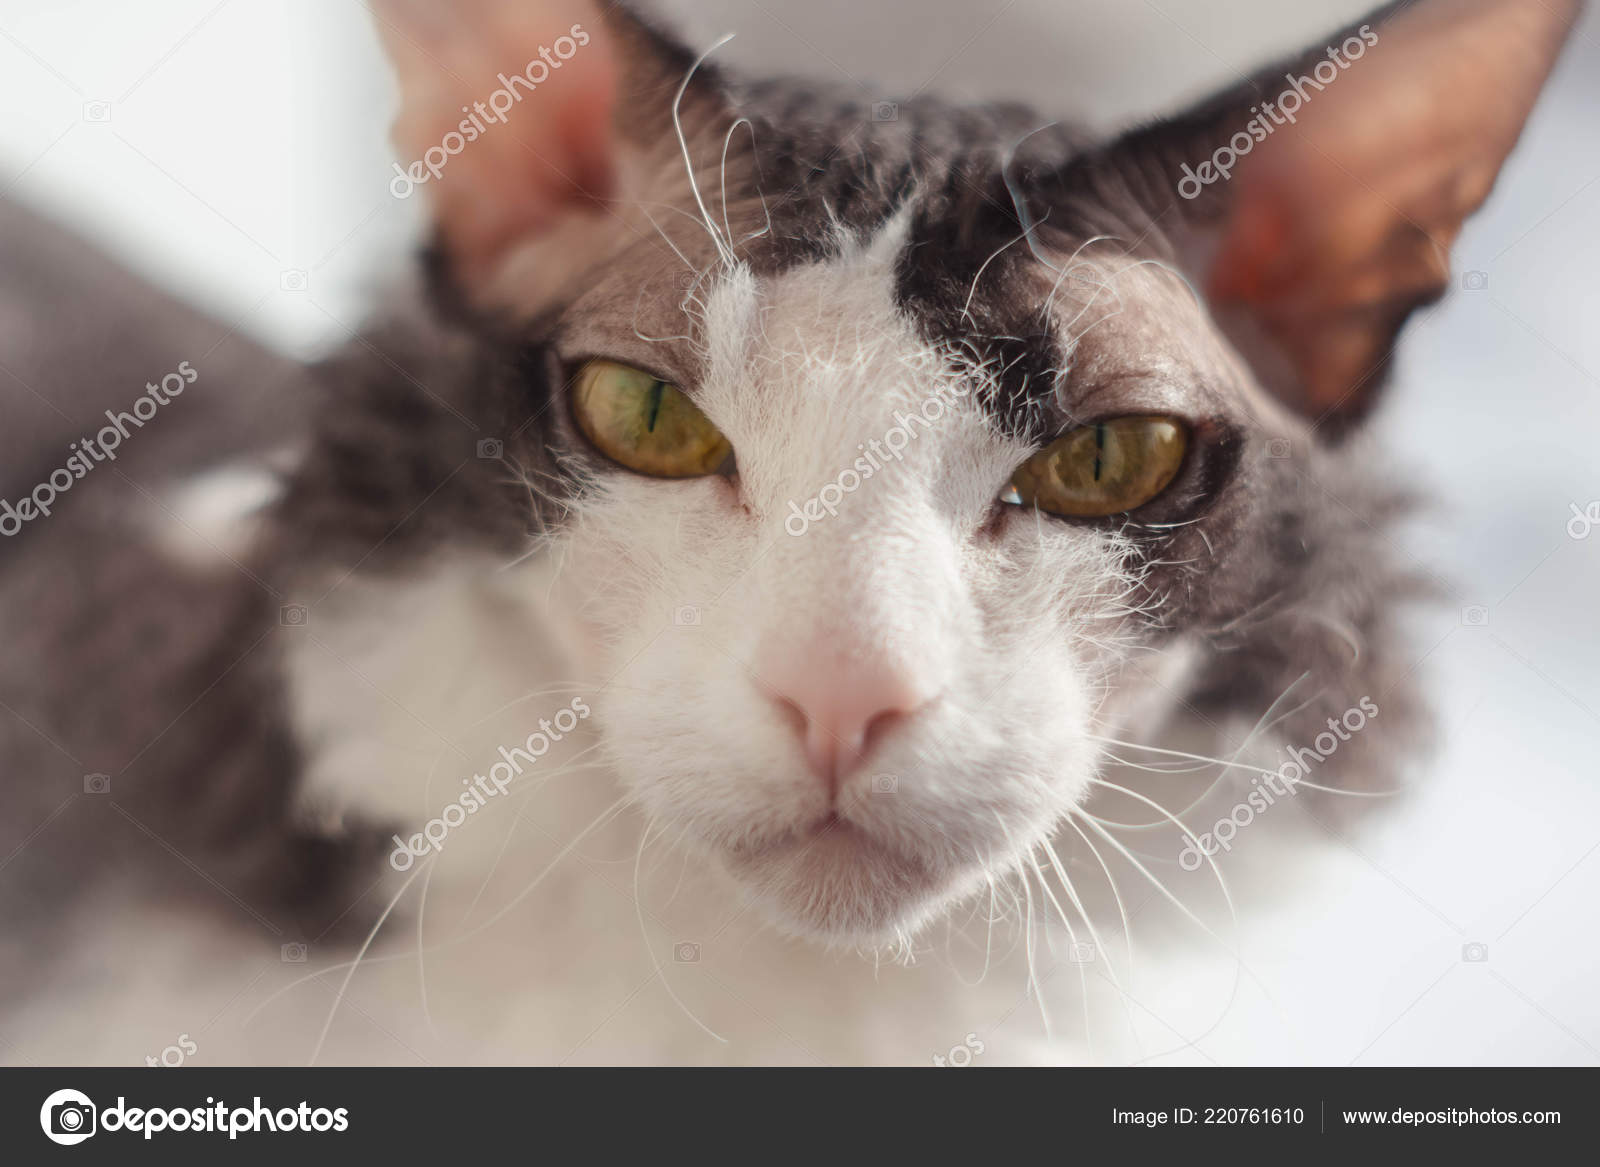 Don Sphynx Brash Cat Big Ears Eyes Background Homely Blurred